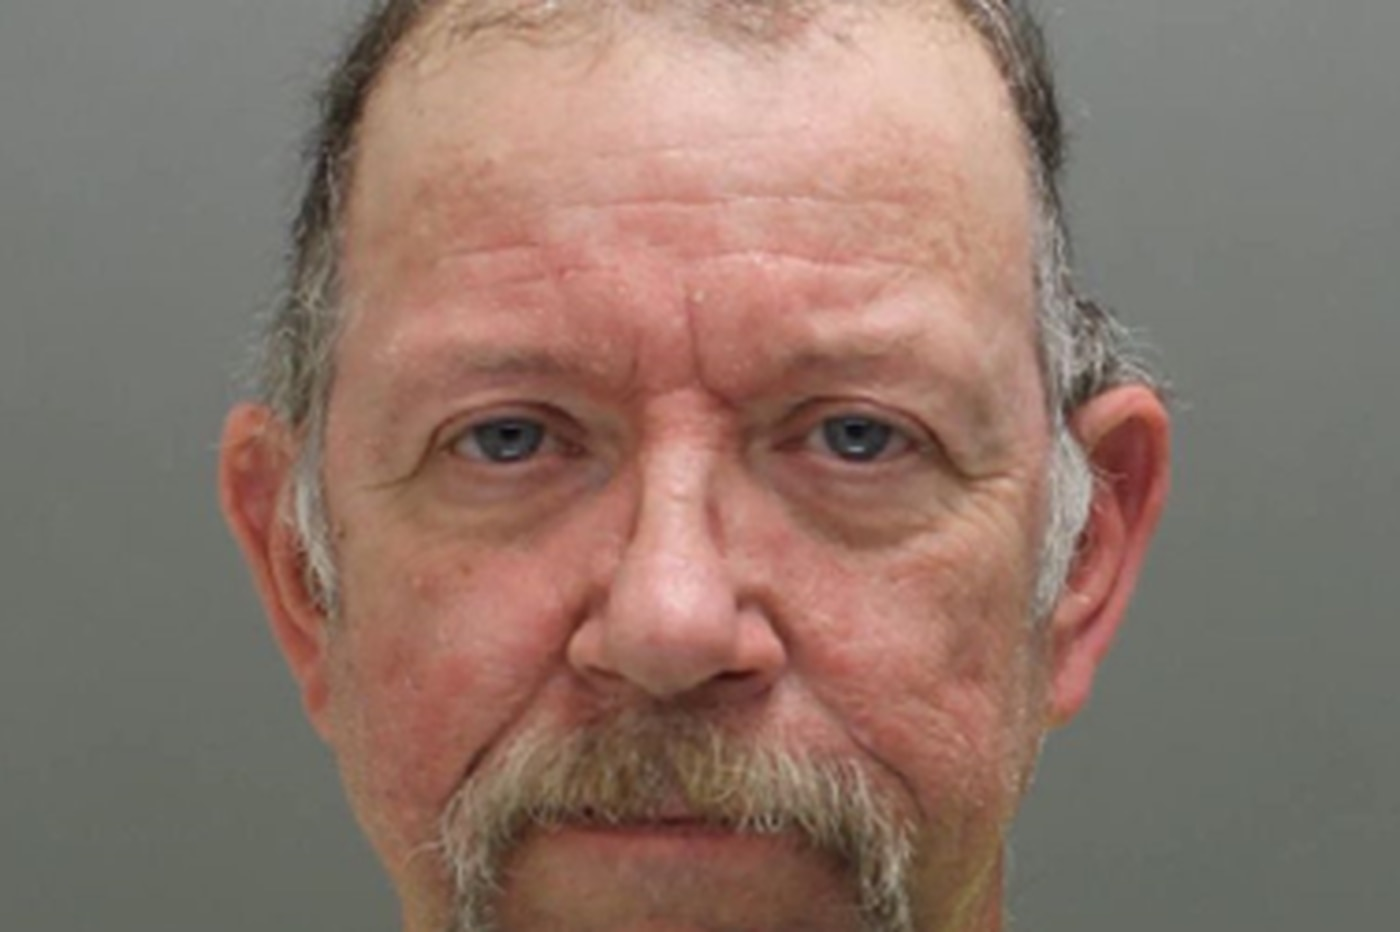 A Montgomery County man admitted to creating a fake dating profile and luring people to an unsuspecting couple's home